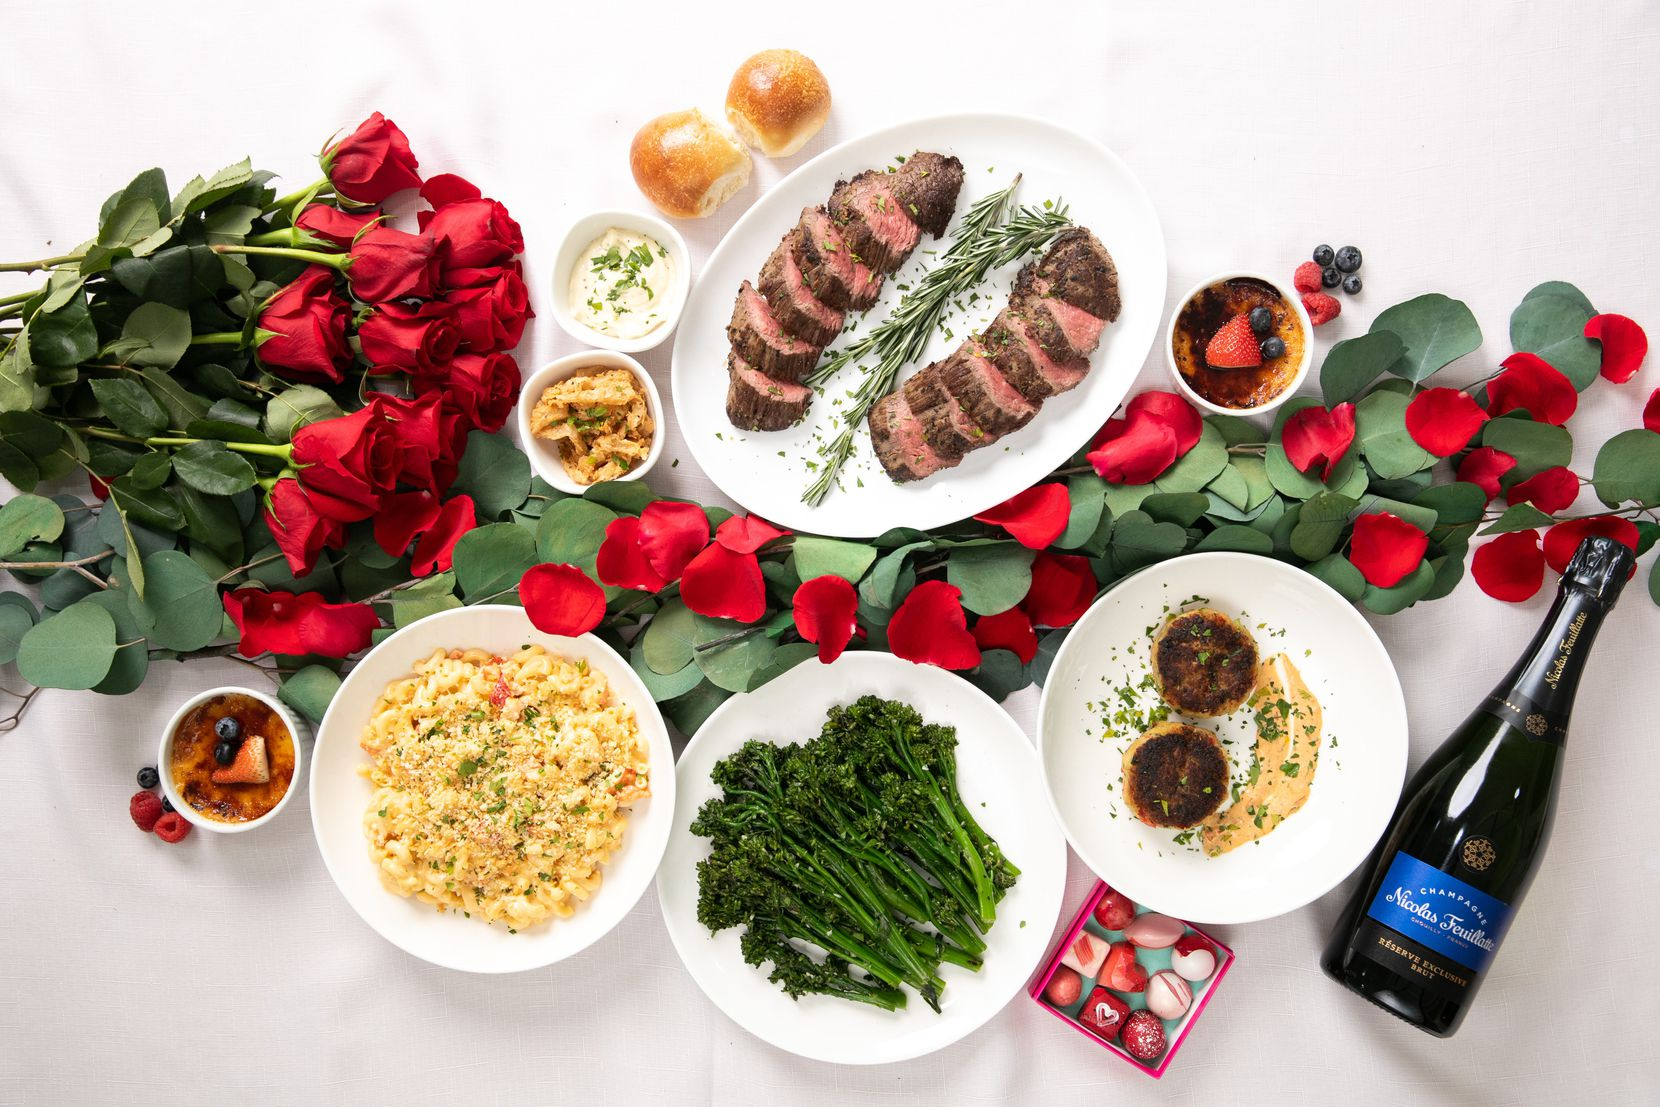 Vestals Catering offers a savory premade dinner for two this Valentine's Day.